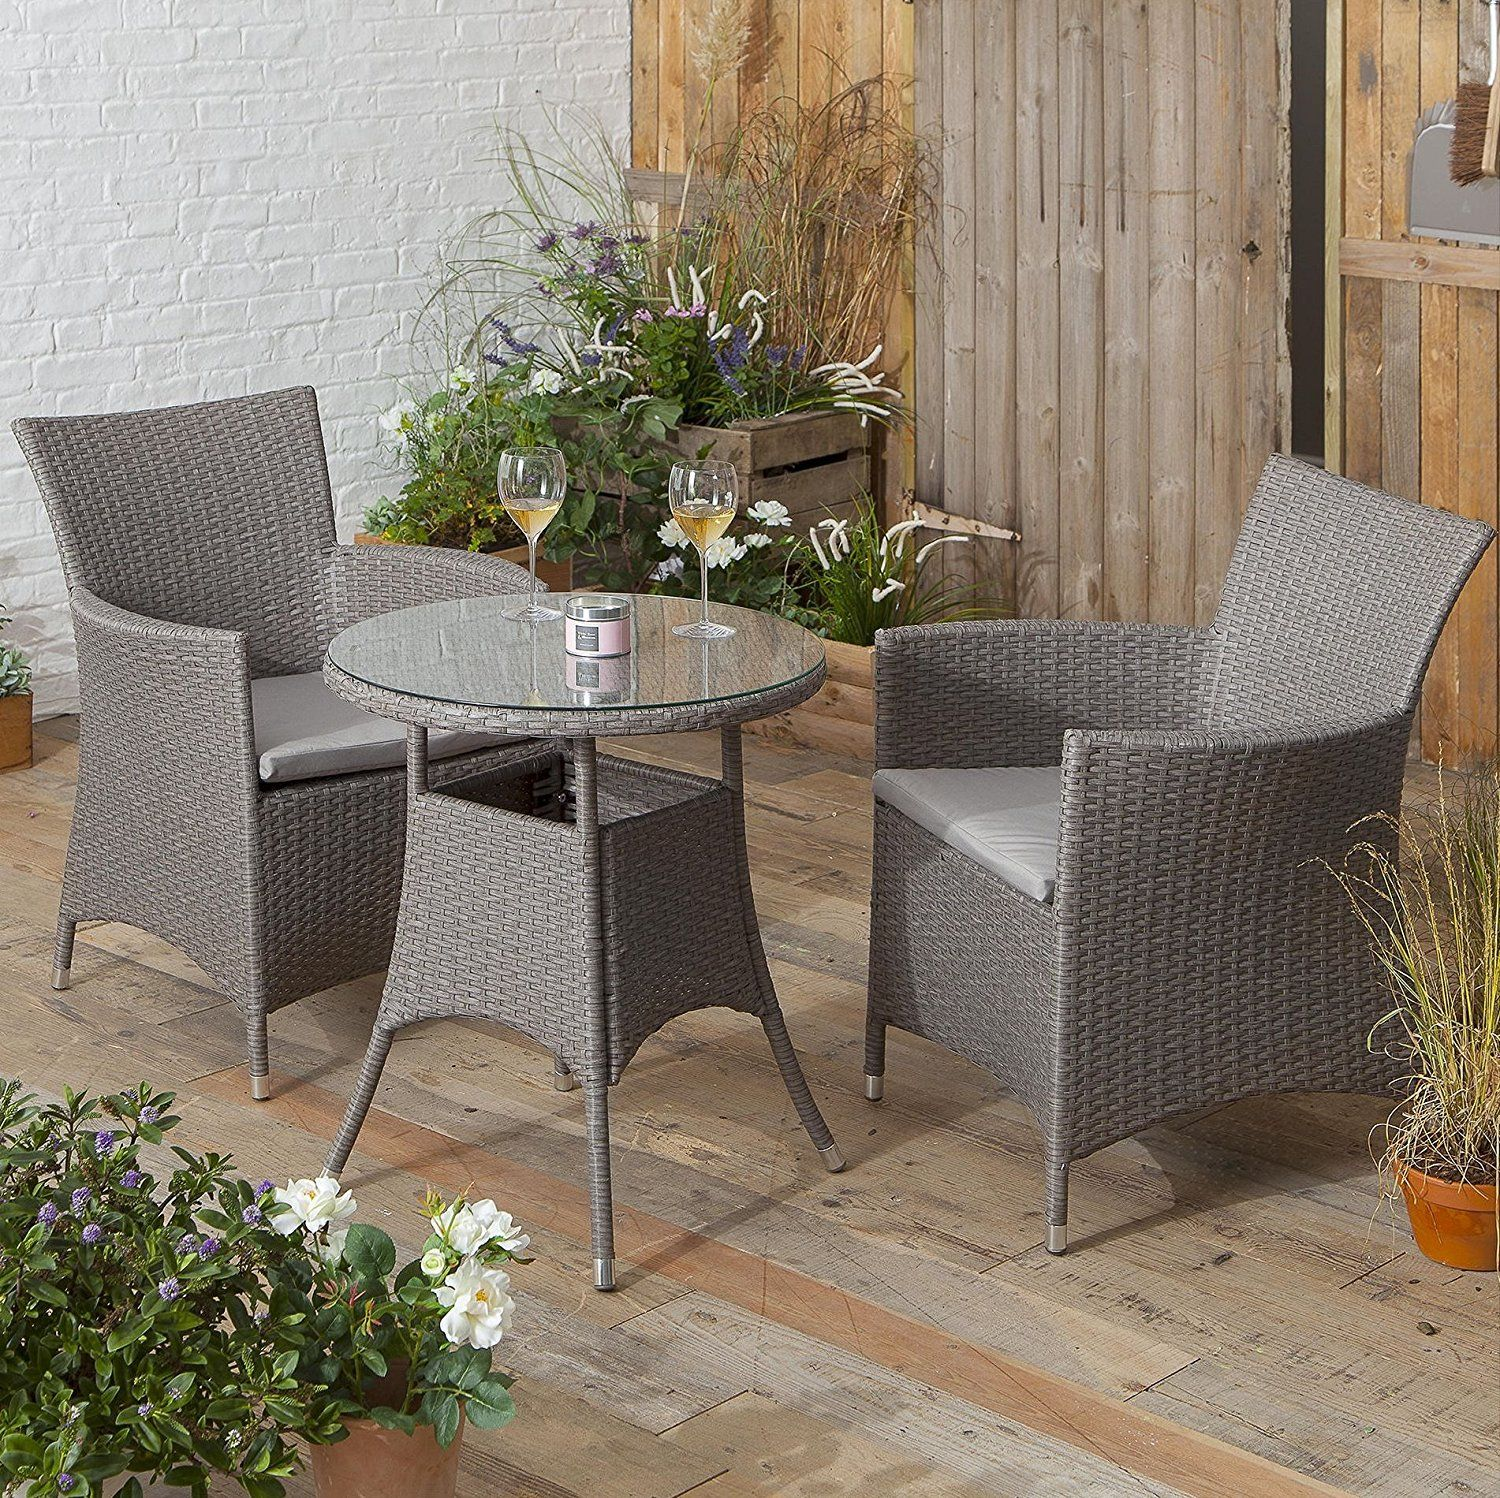 Great Value and Stylish Rattan Style Bistro Set Garden Patio Table ...